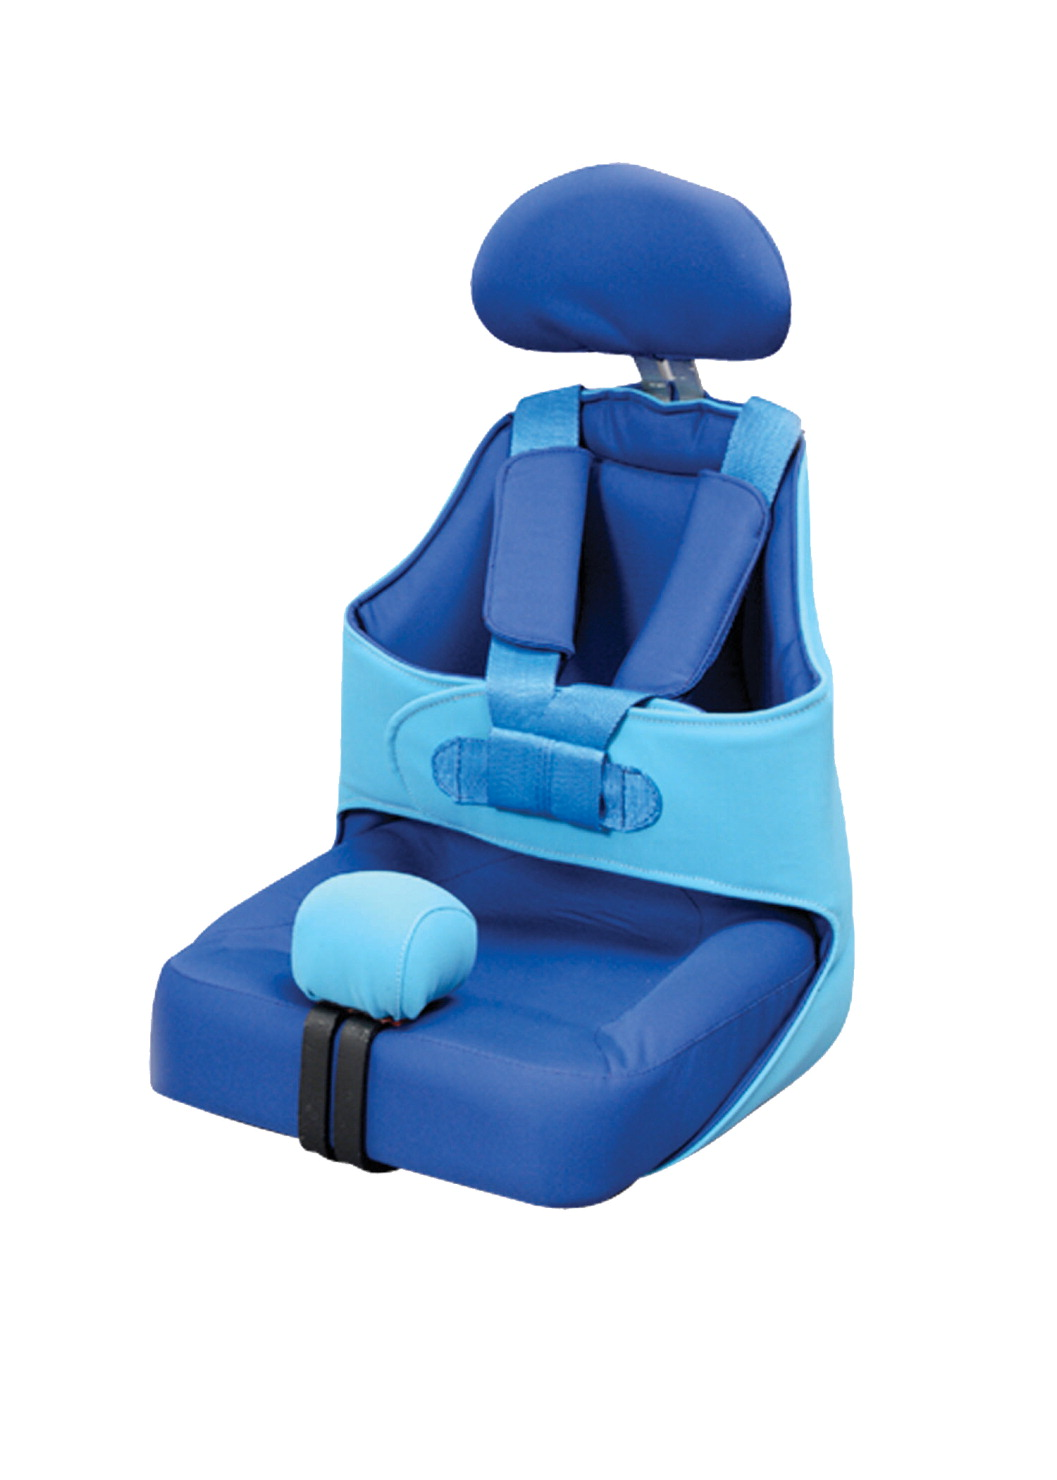 Drive Medical Seat2Go Adjustable Abductor, 3 x 4 x 3 Inches